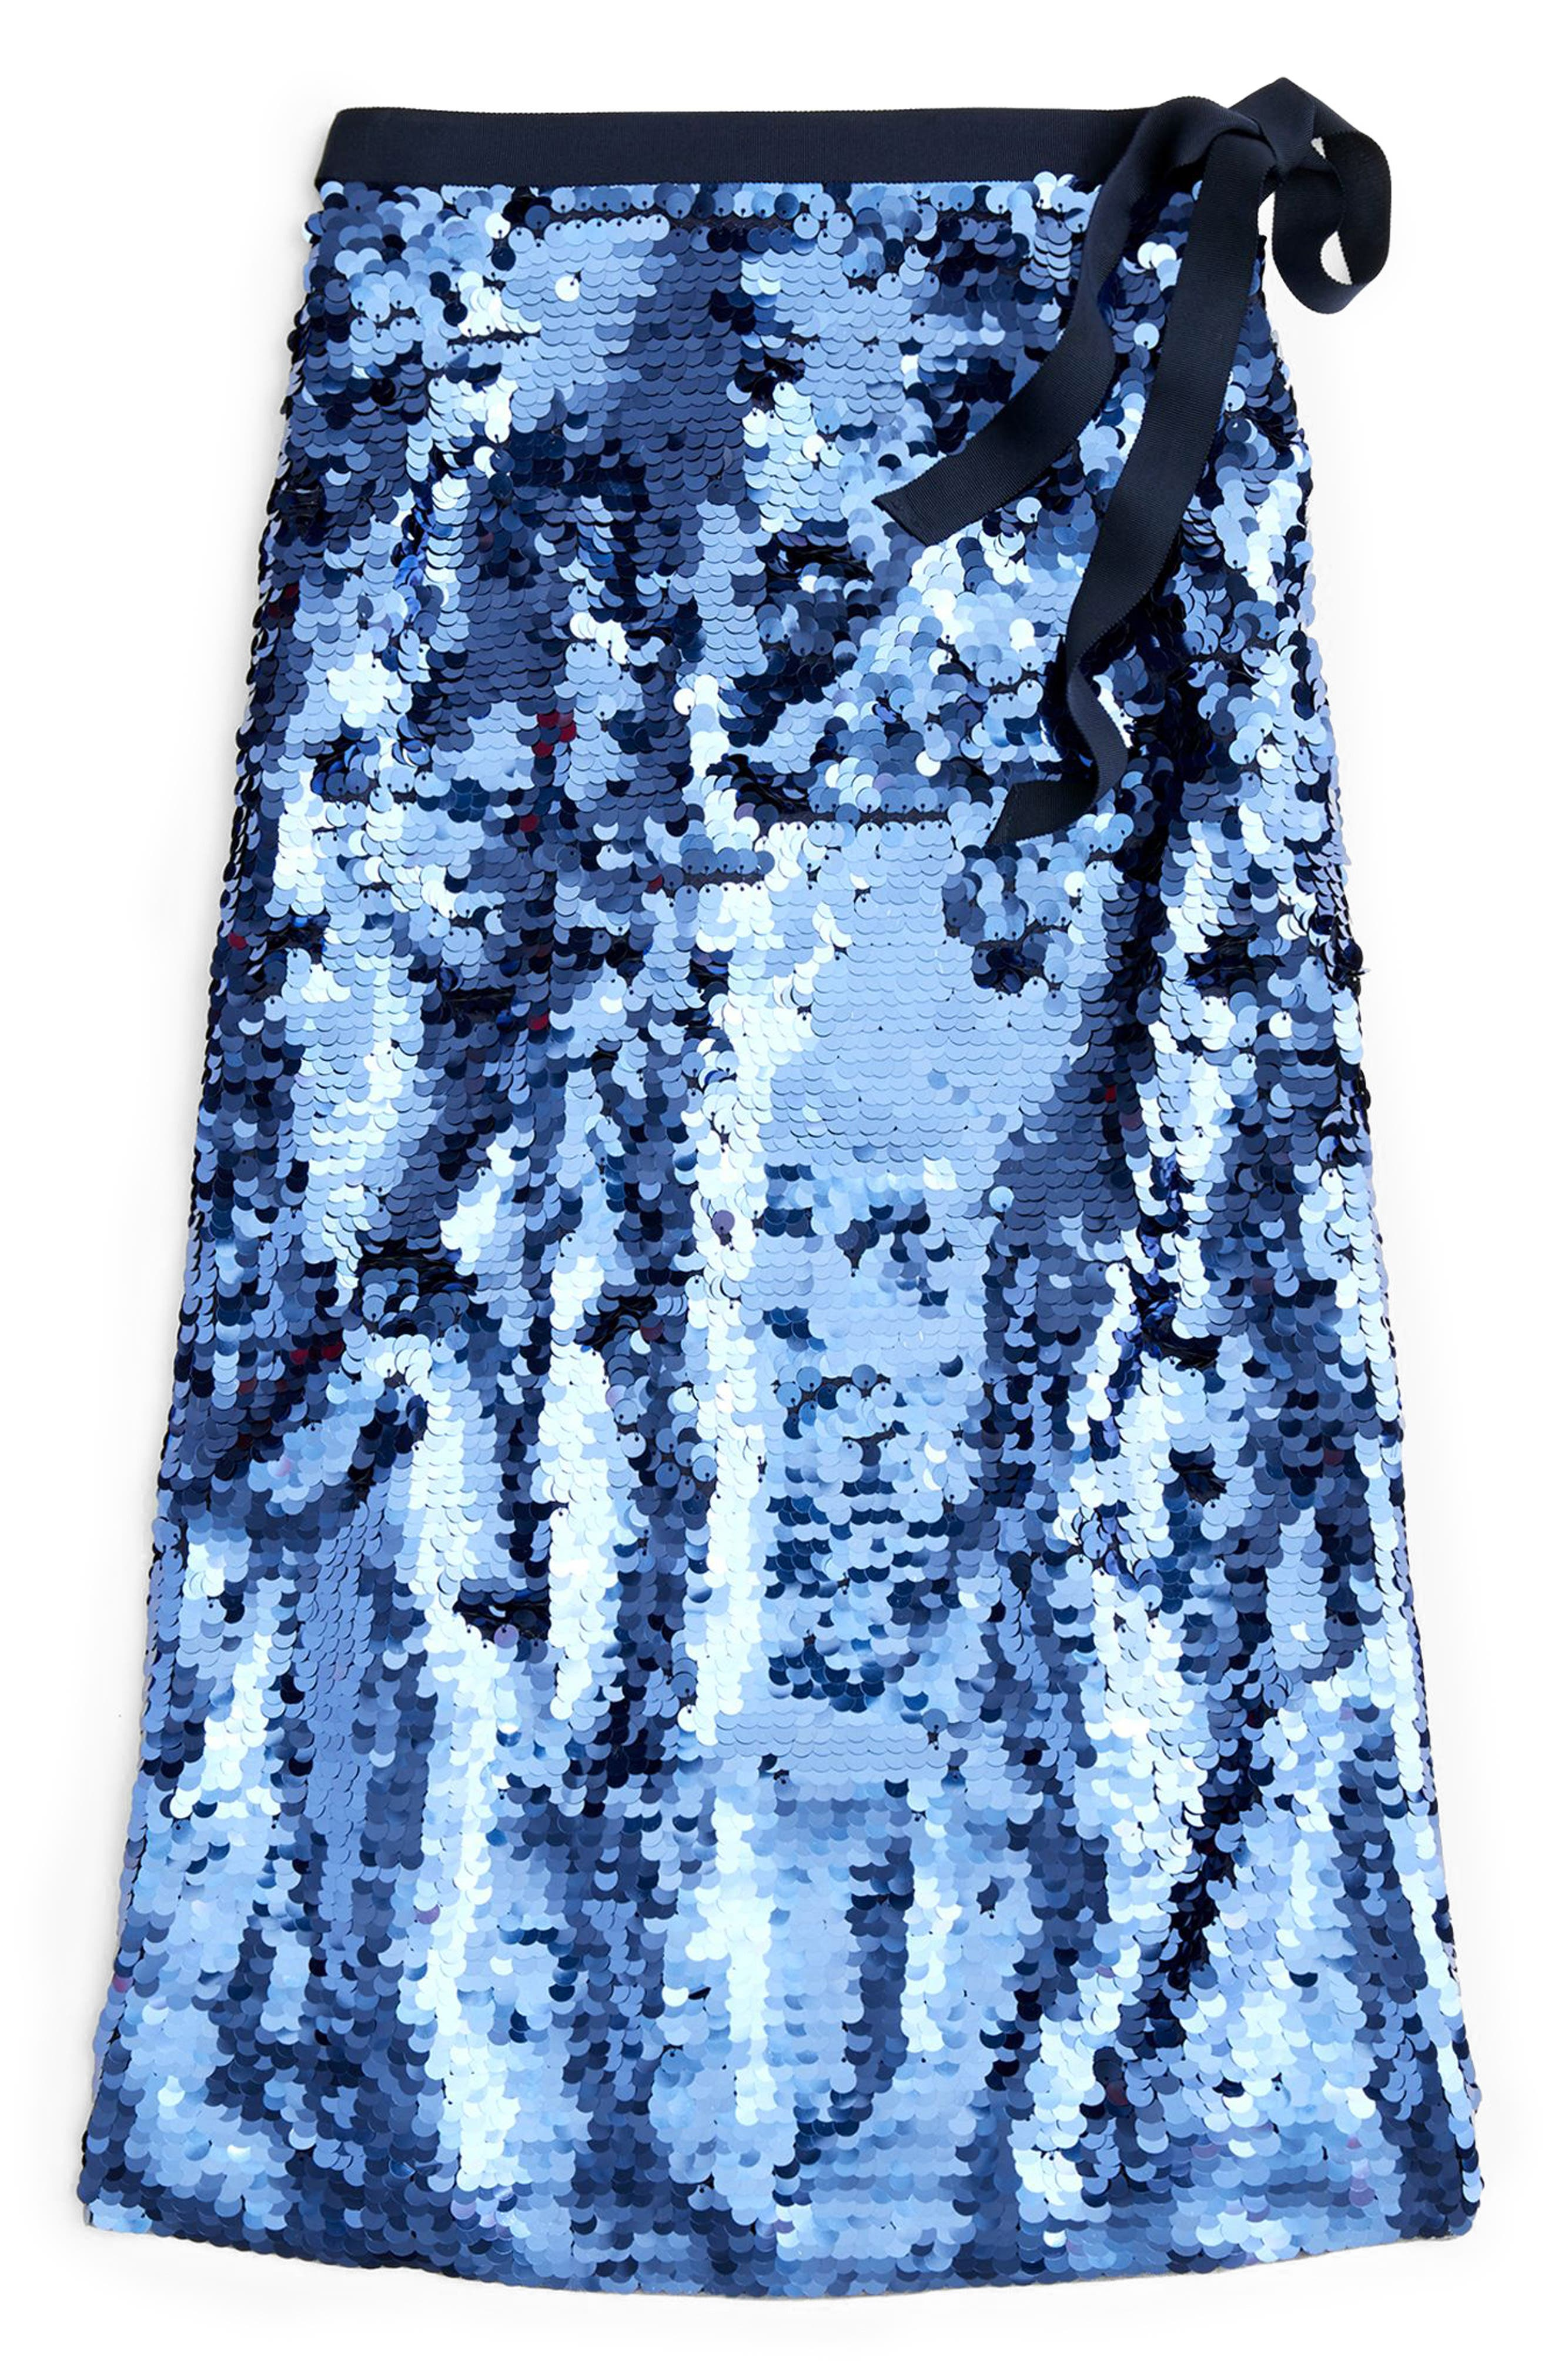 Sequin Midi Skirt with Tie,                             Alternate thumbnail 5, color,                             NAVY